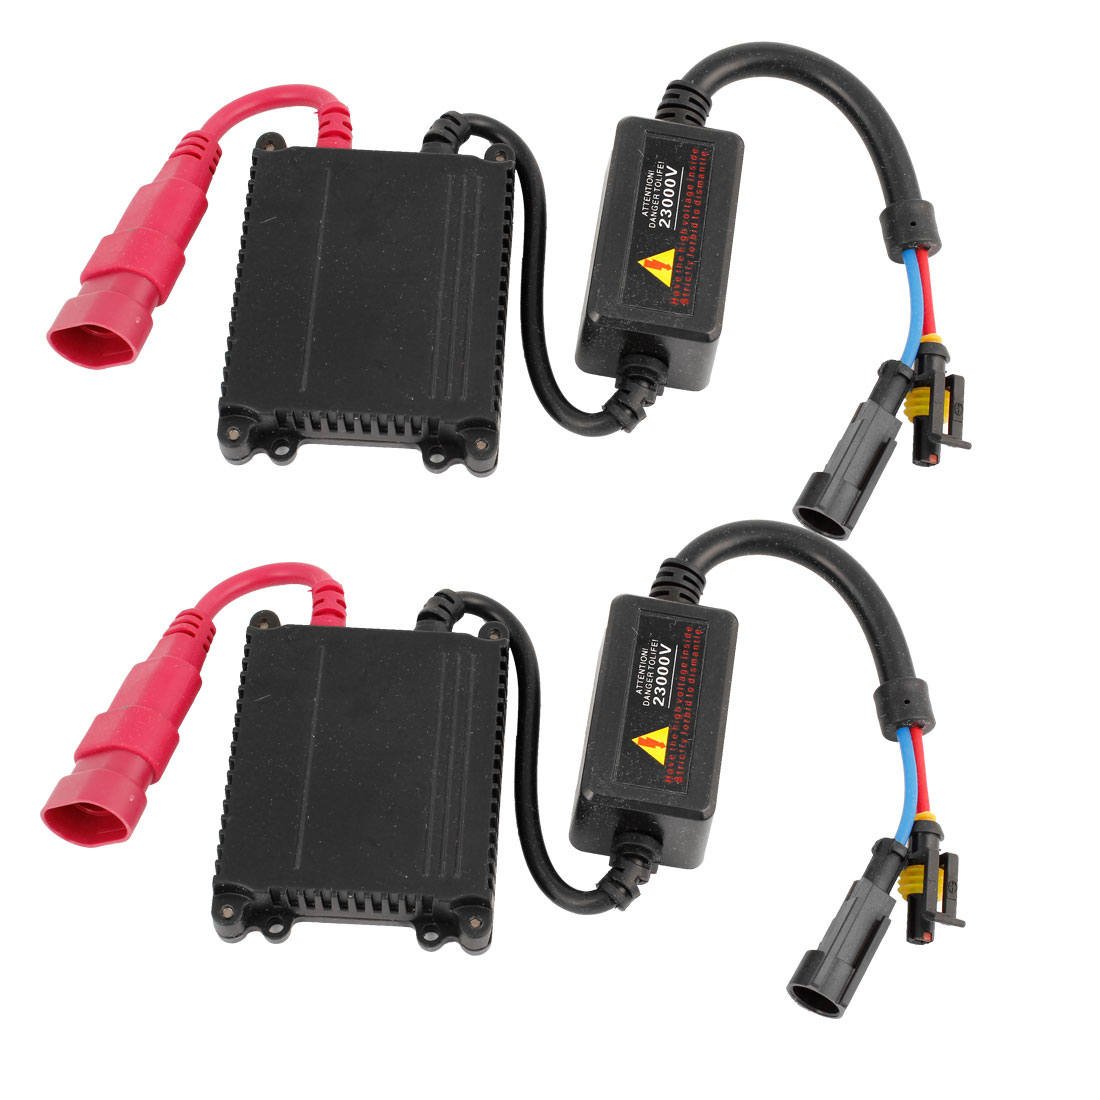 2 Pcs HID Xenon Conversion Slim Ballast Replacement 12V 35W Black